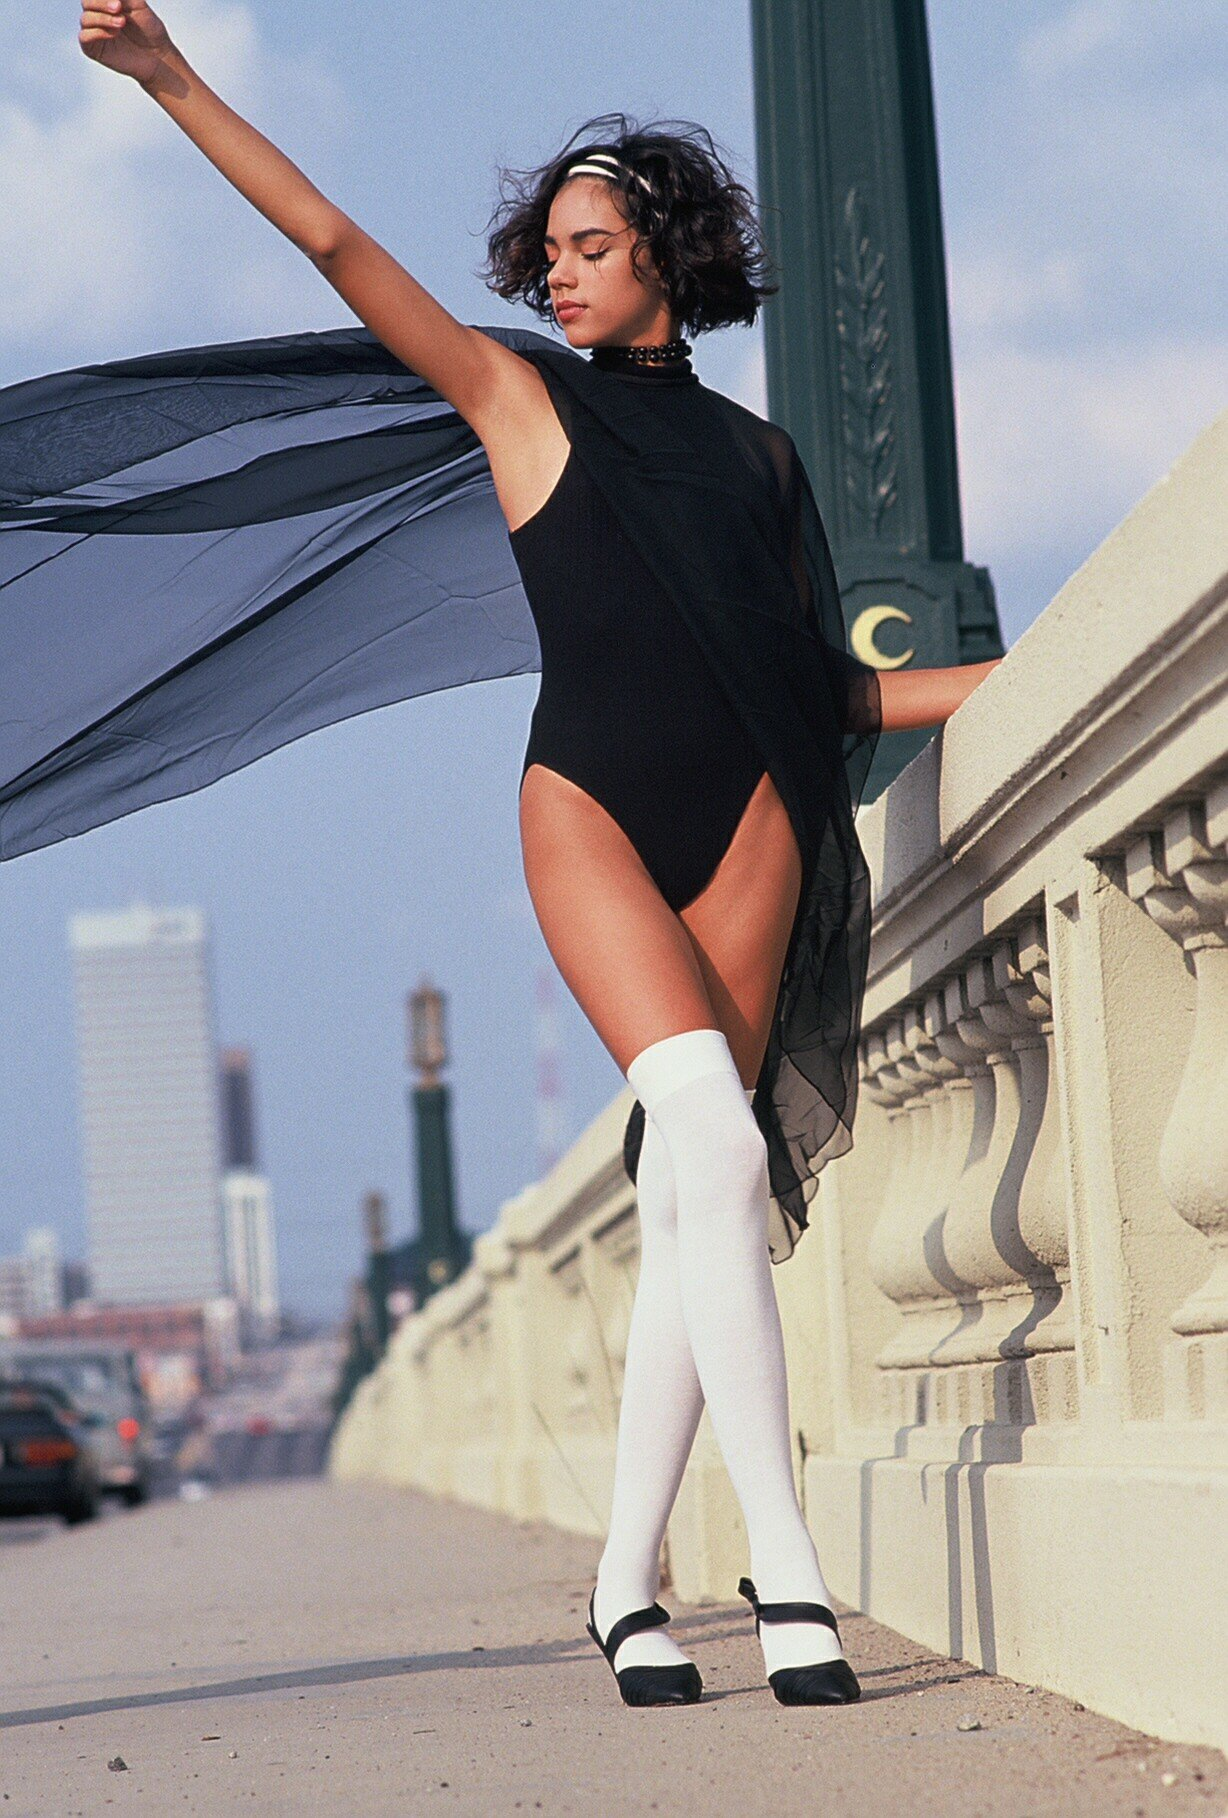 KIM JOSEY-  INTERNATIONAL SUPERMODEL started modeling in NYC as a teen in print, runway and worldwide campaigns.